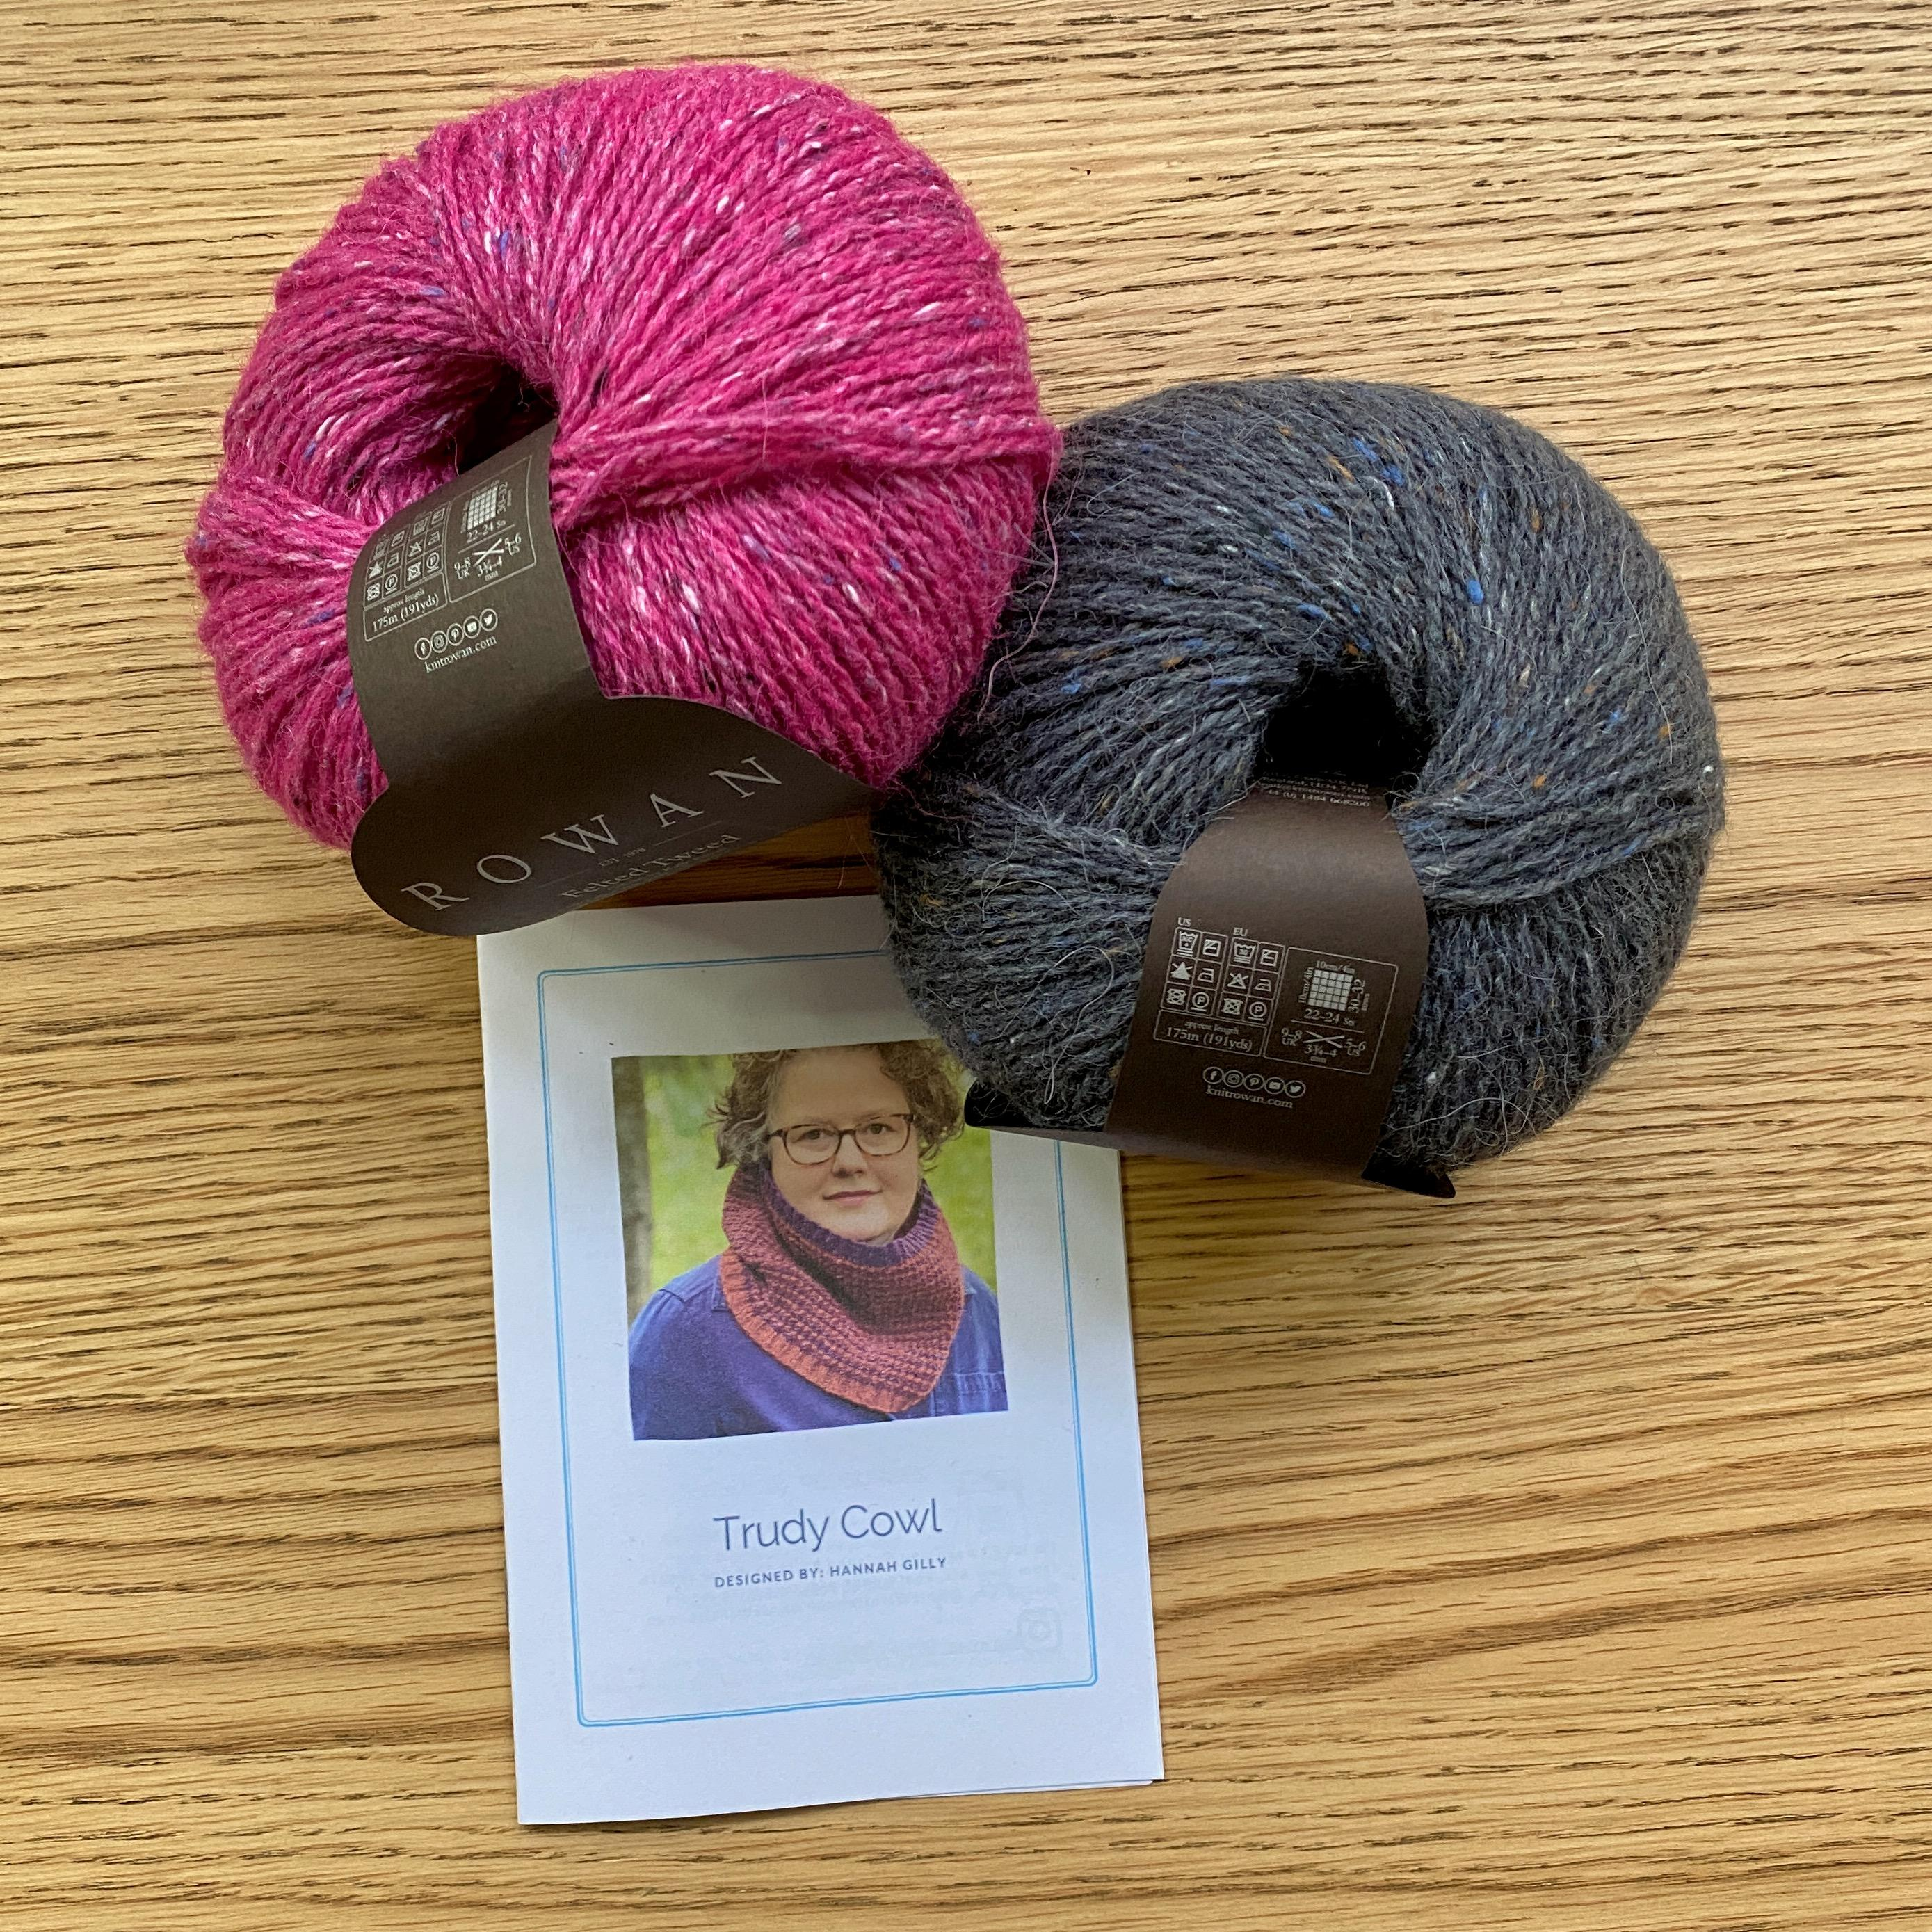 Trudy Cowl Knitting pattern on wooden table with 2 balls of yarn - Bright pink and Carbon grey